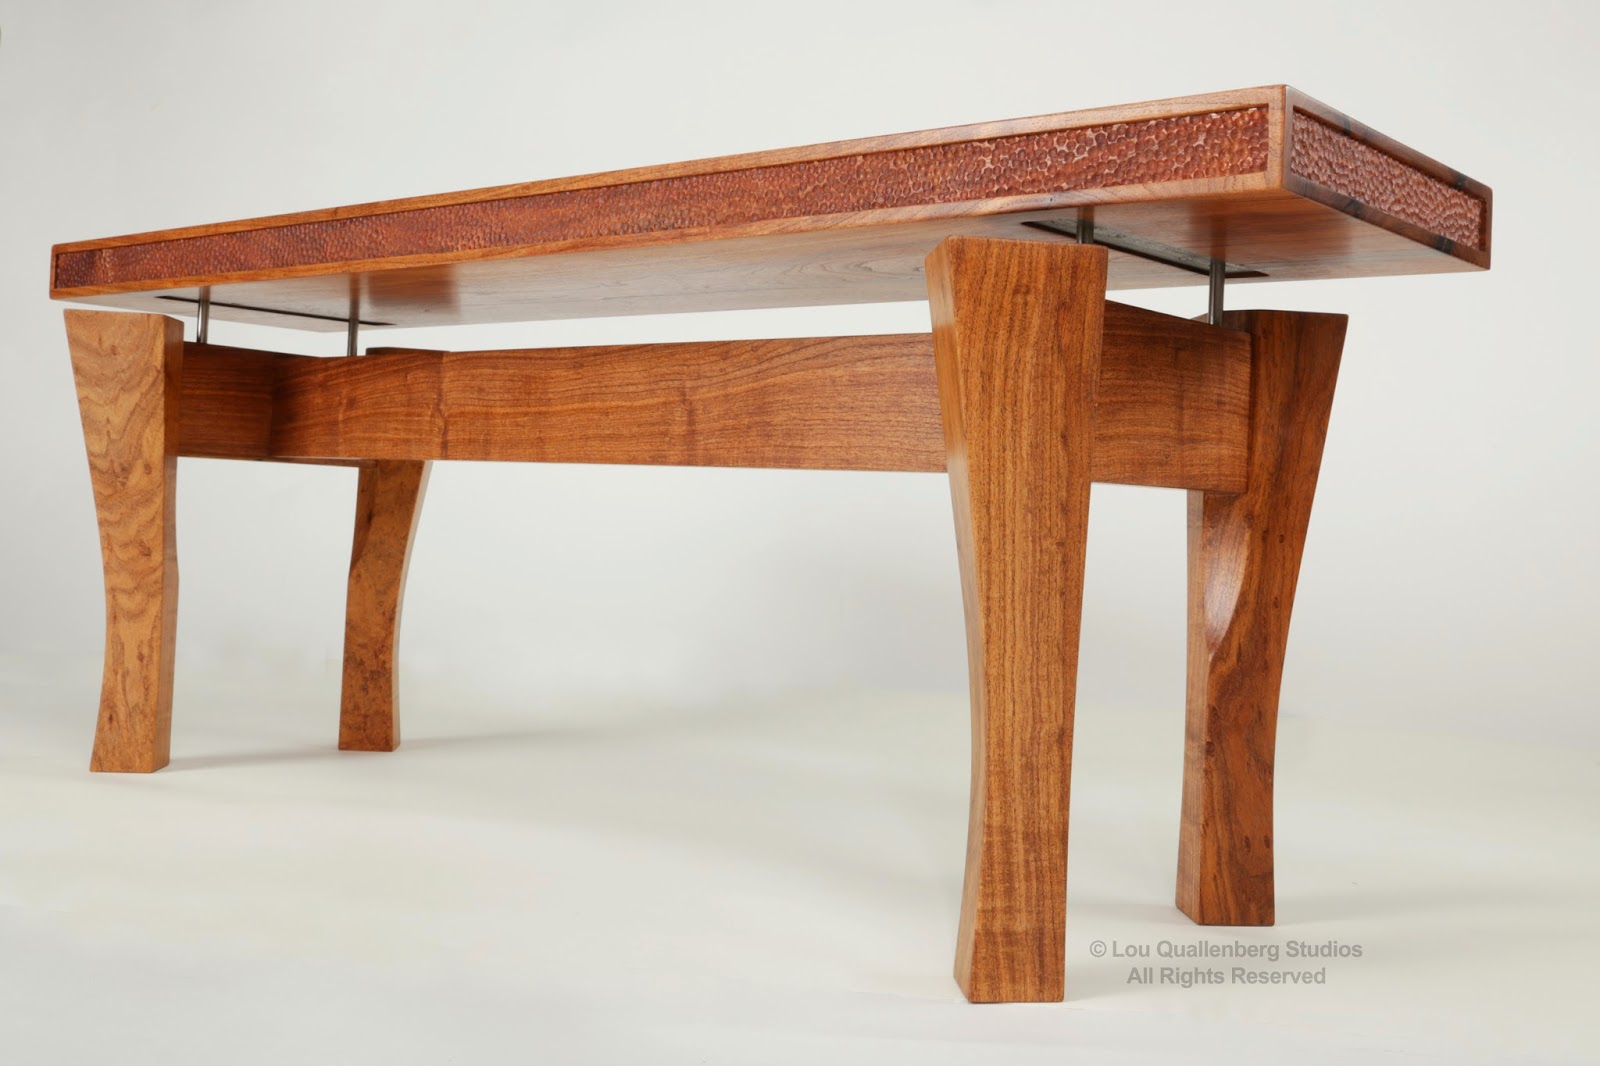 Mesquite Bench by Lou Quallenberg